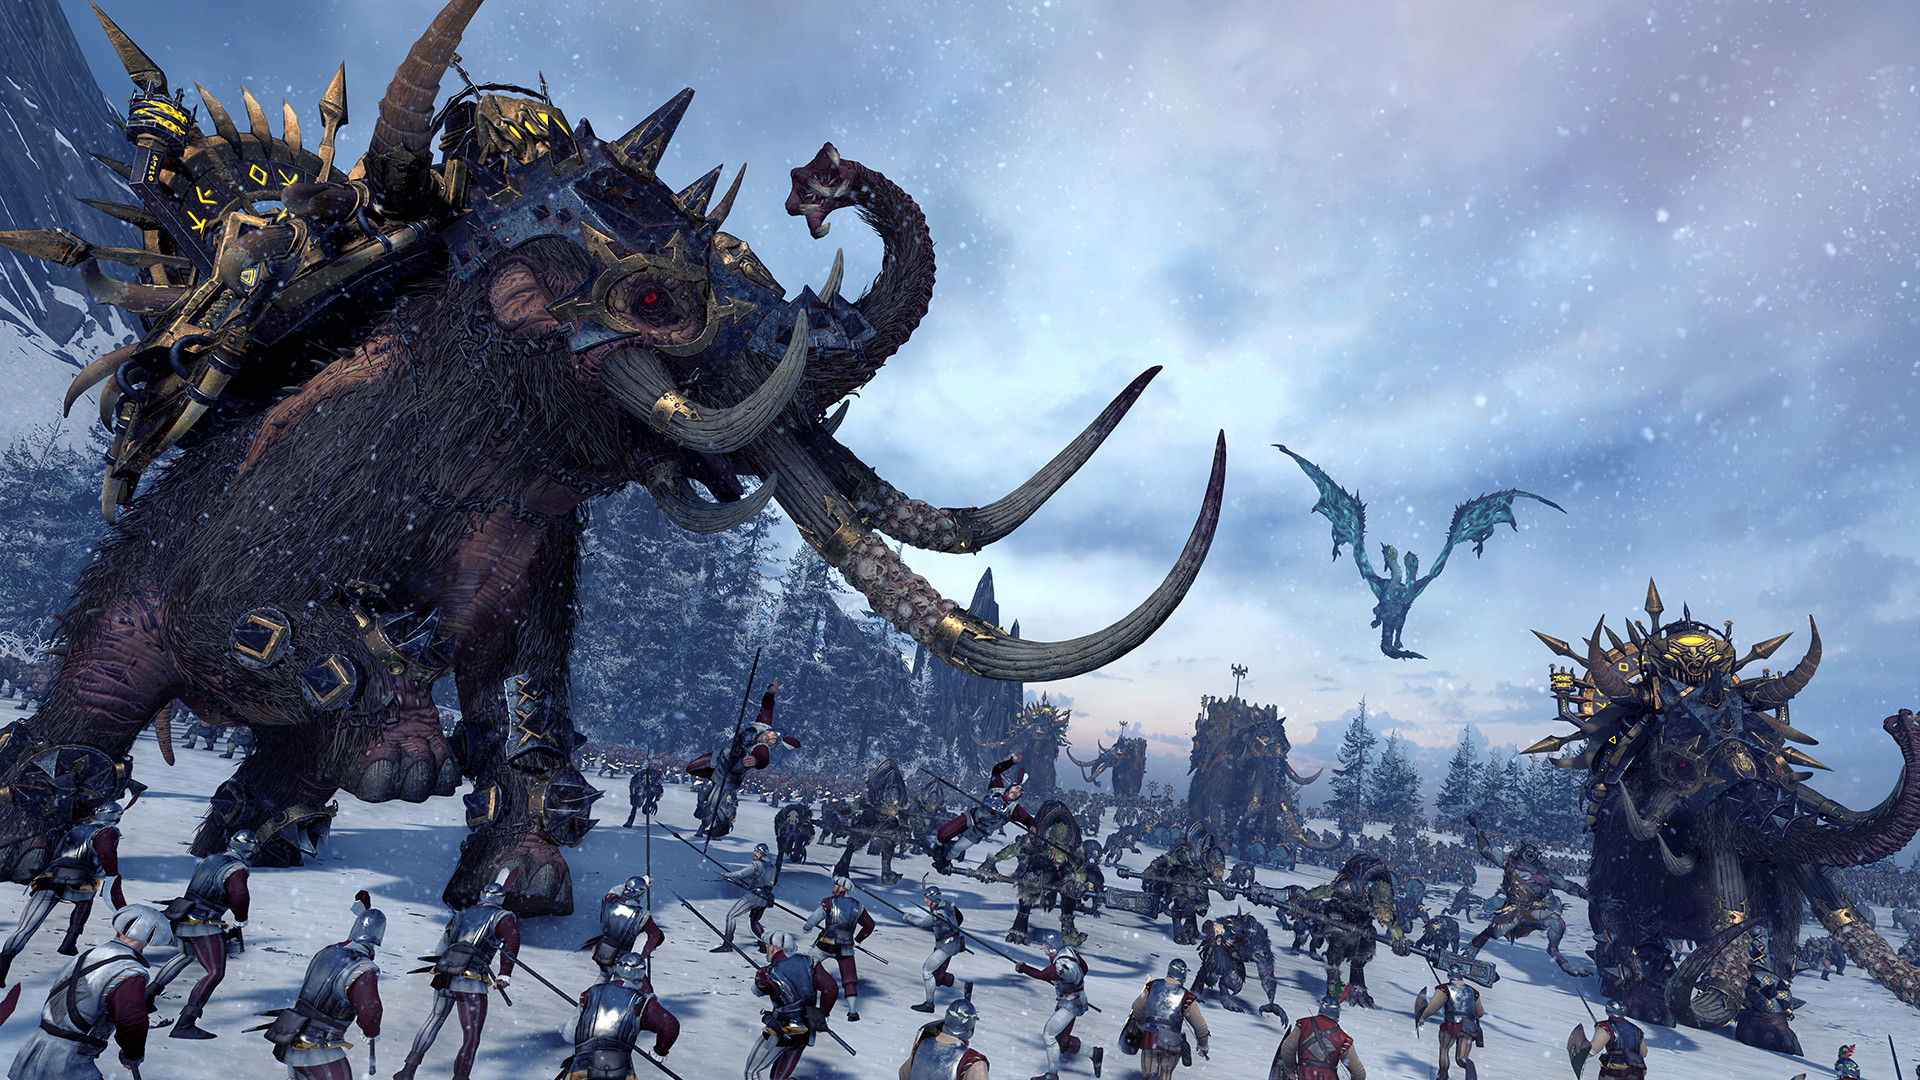 Total War: WARHAMMER - Norsca Torrent